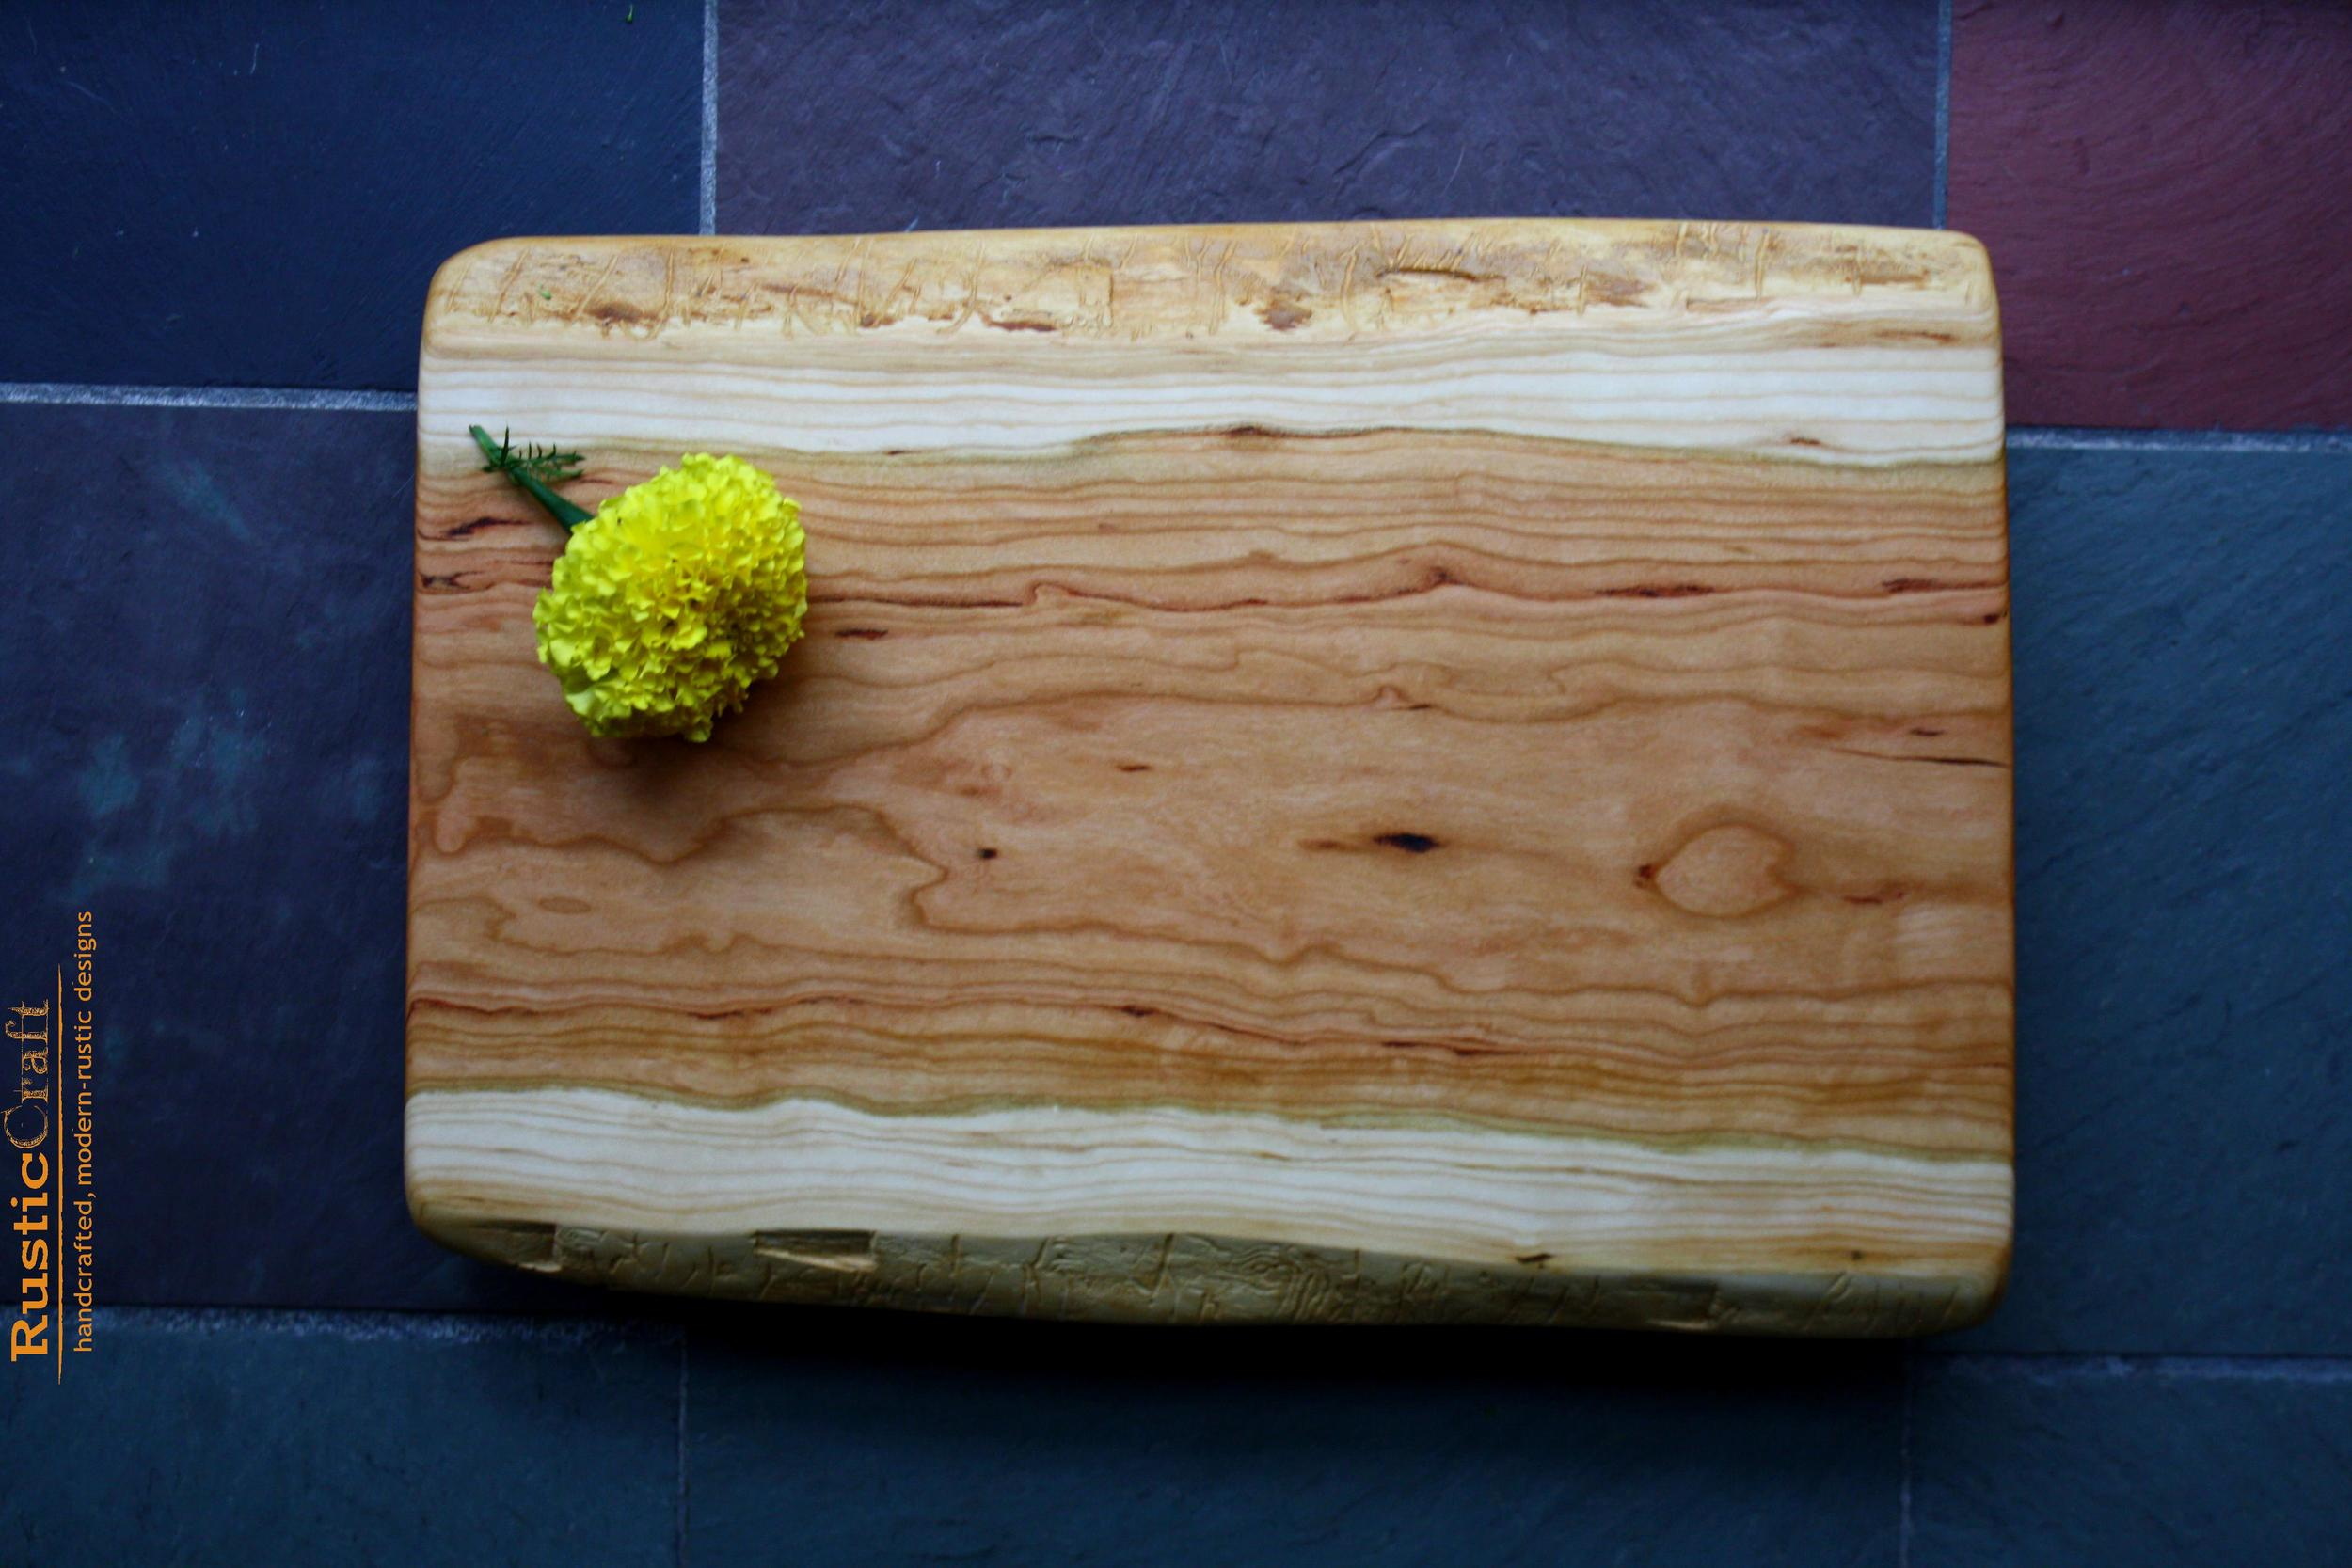 5th Anniversary Gift- Black Cherry Footed Cutting Board -Handcrafted Rustic Wedding Gift 407